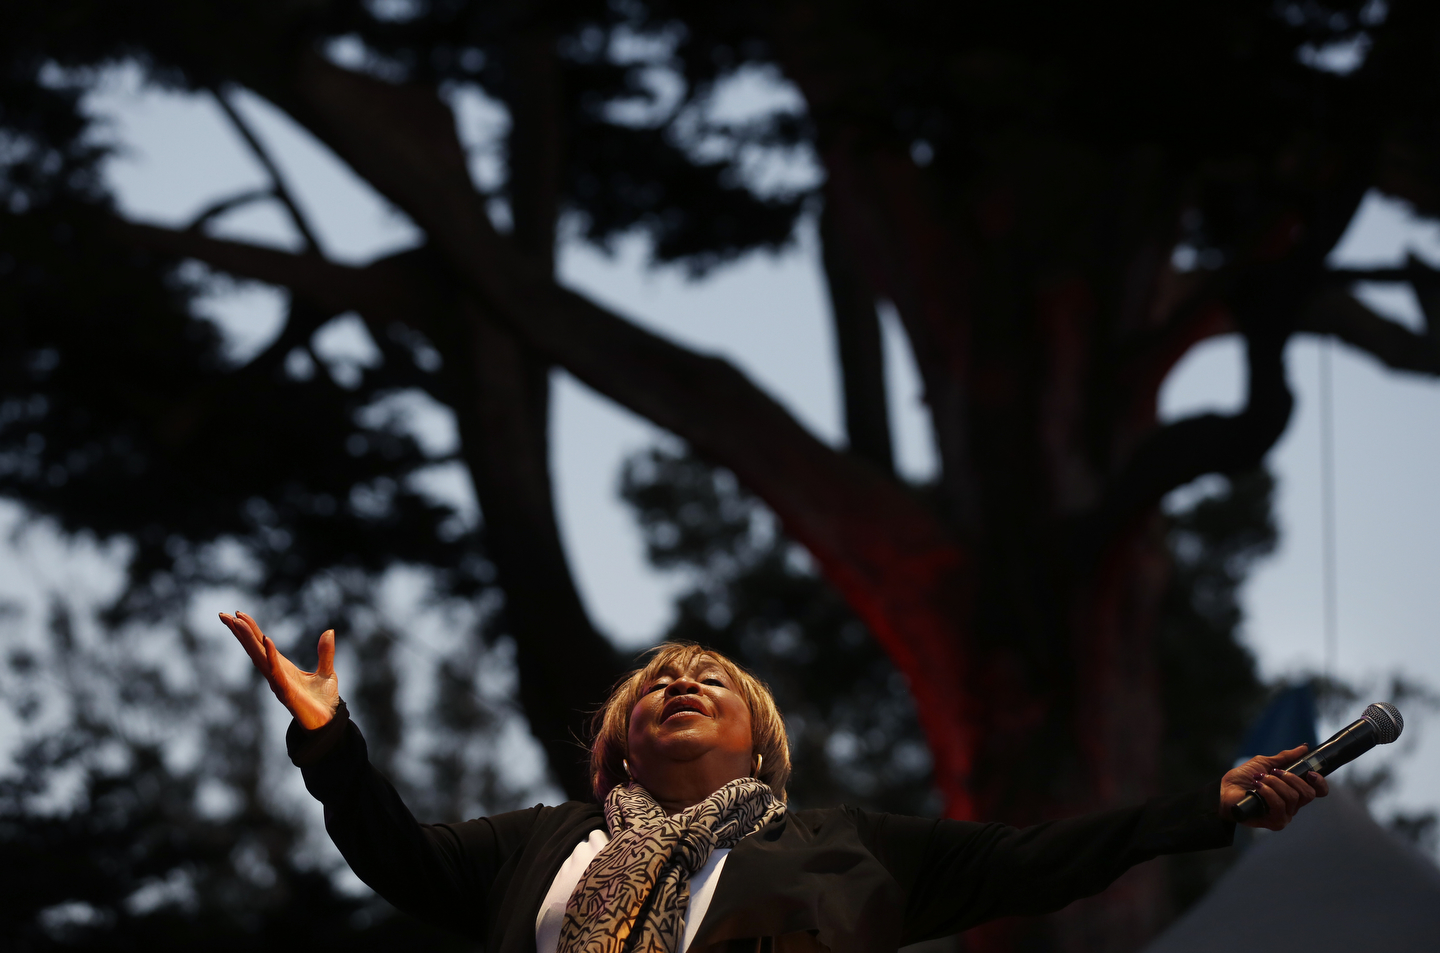 Mavis Staples performs during the first day of the annual Hardly Strictly Bluegrass festival in Golden Gate Park Sept. 30, 2016 in San Francisco, Calif.